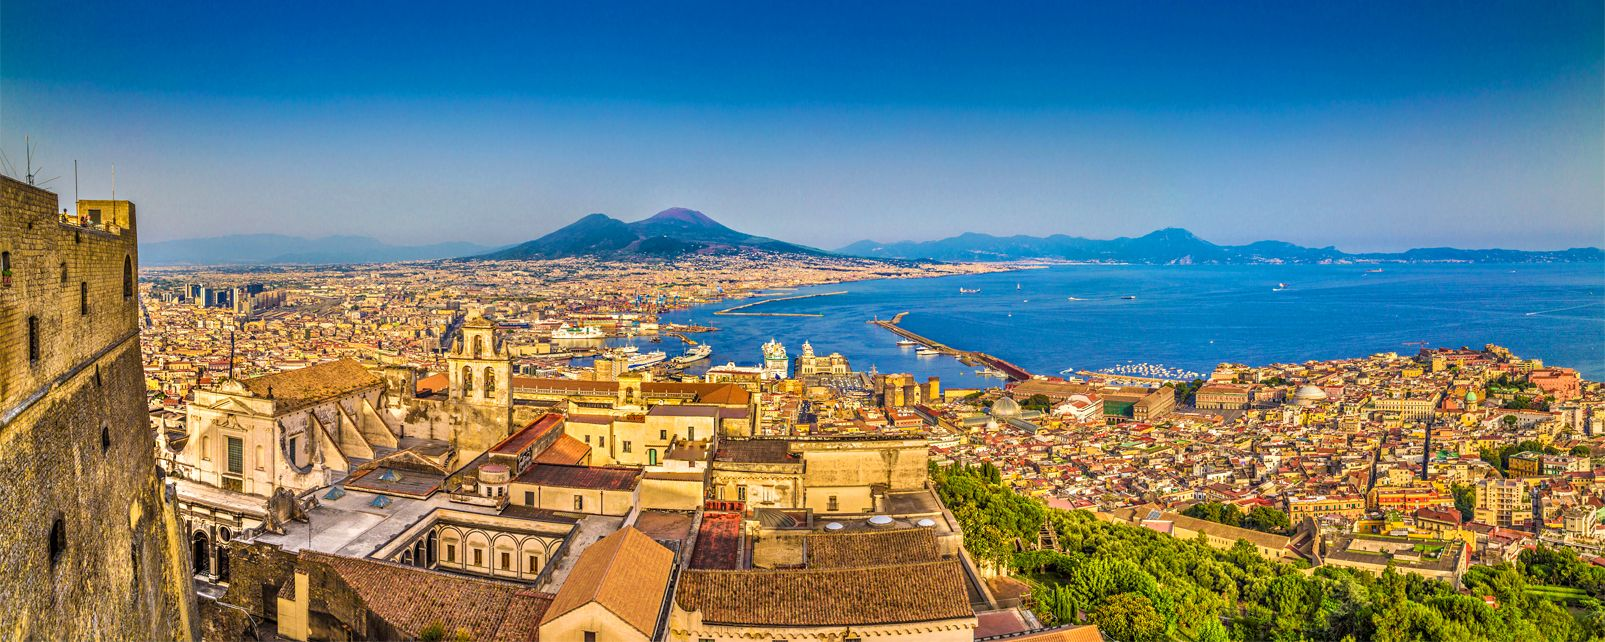 La baie de Naples , Incomparable baie de Naples , Italie